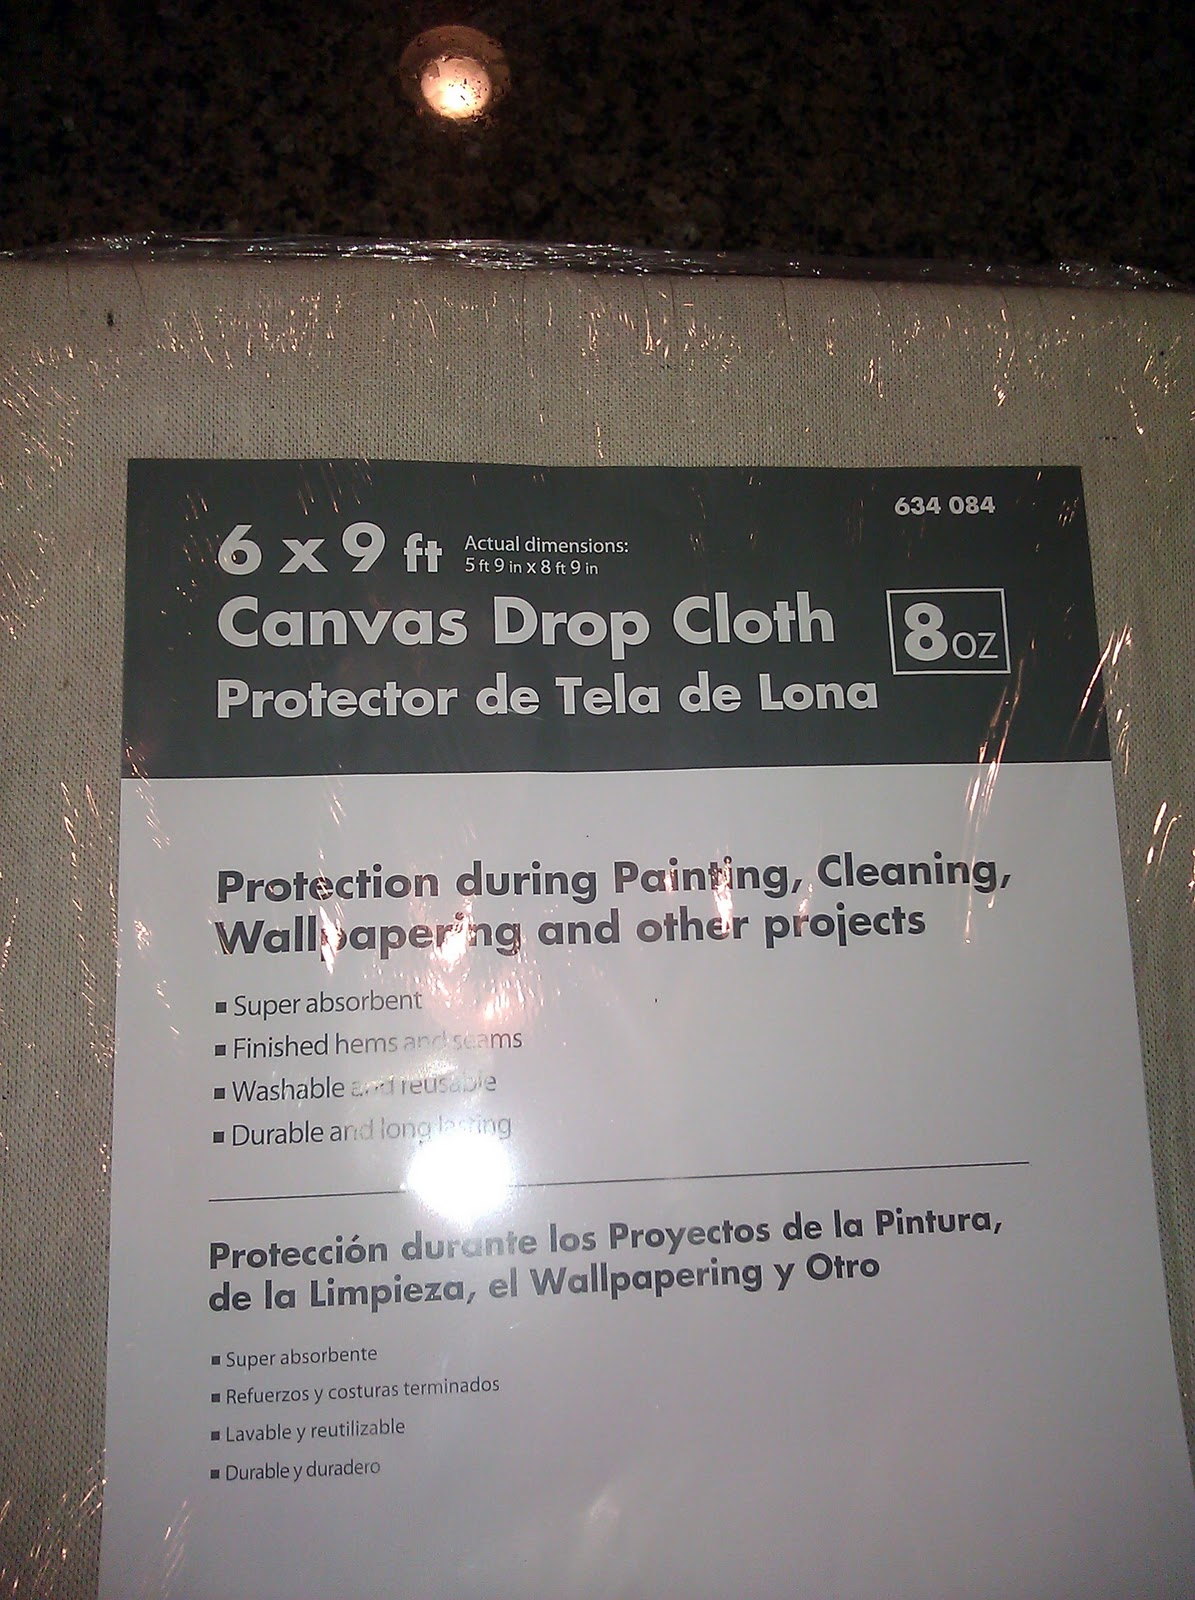 Drop clothes home depot best home design and decorating ideas - I Ll Be The First To Admit That I Was Very Skeptical When I First Picked It Up And Thought Miss Mustard Seed Must Have A Much Better Drop Cloth Variety At